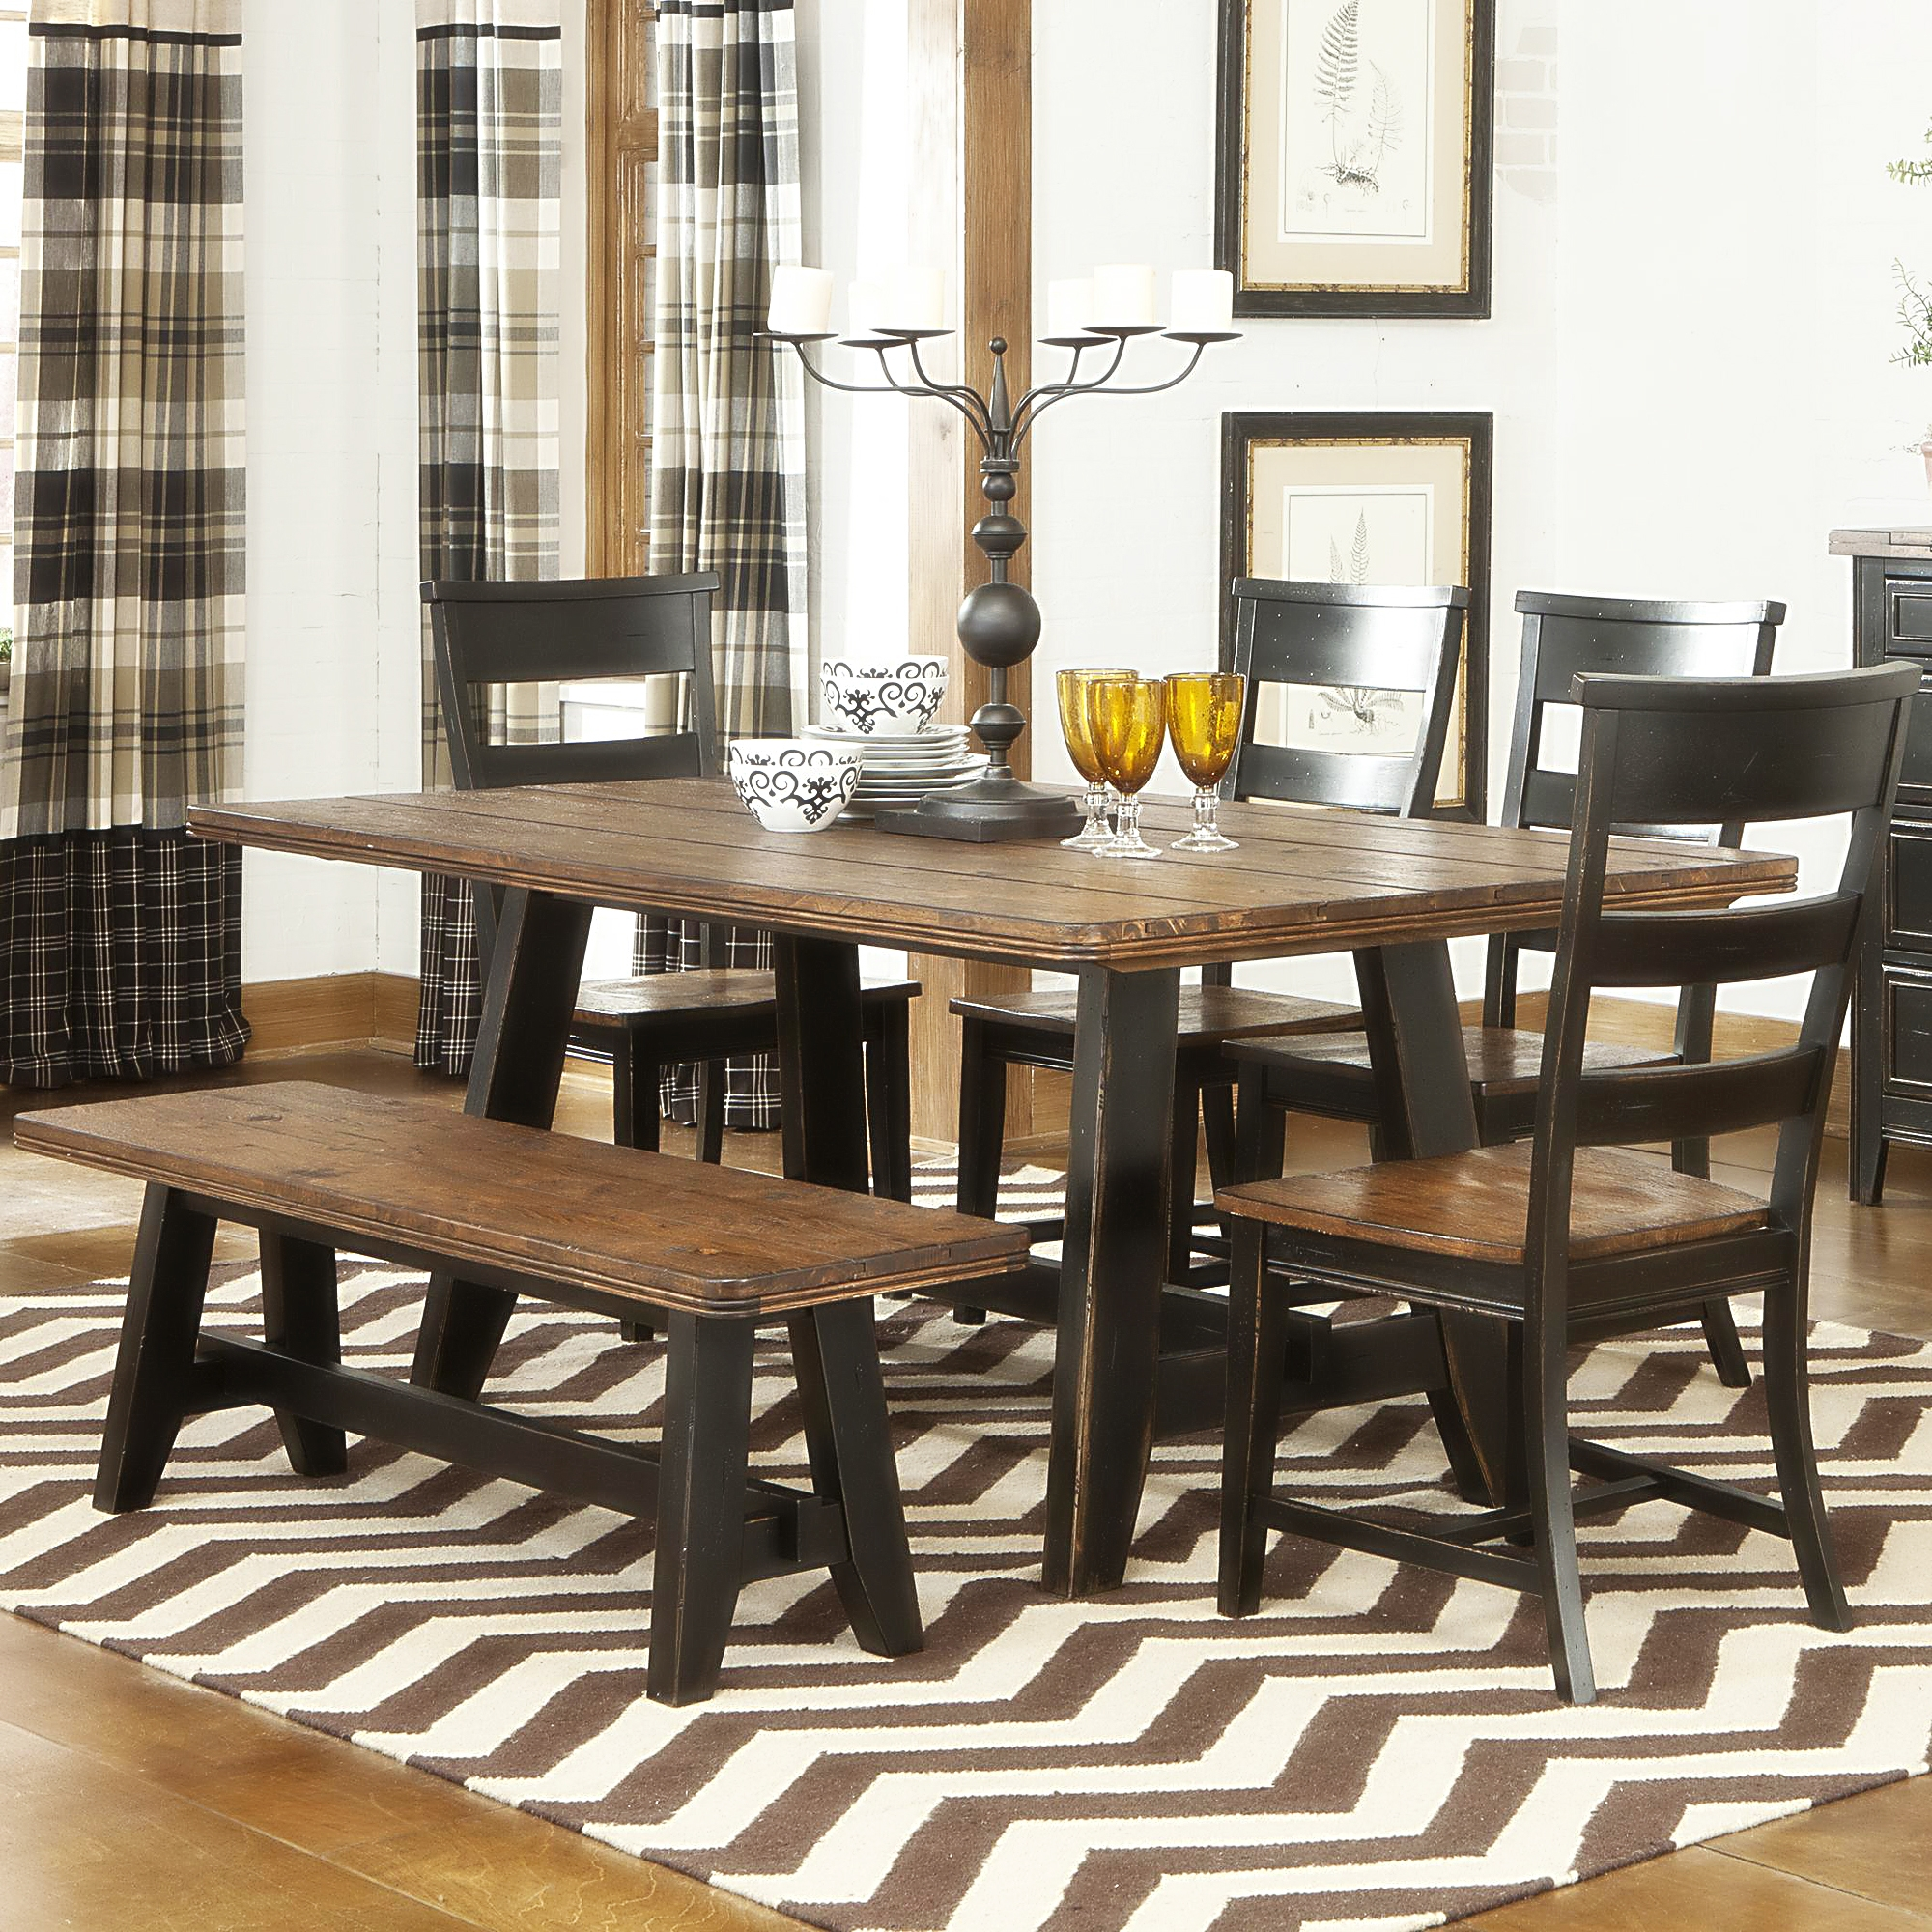 Black Kitchen Table Set With Bench